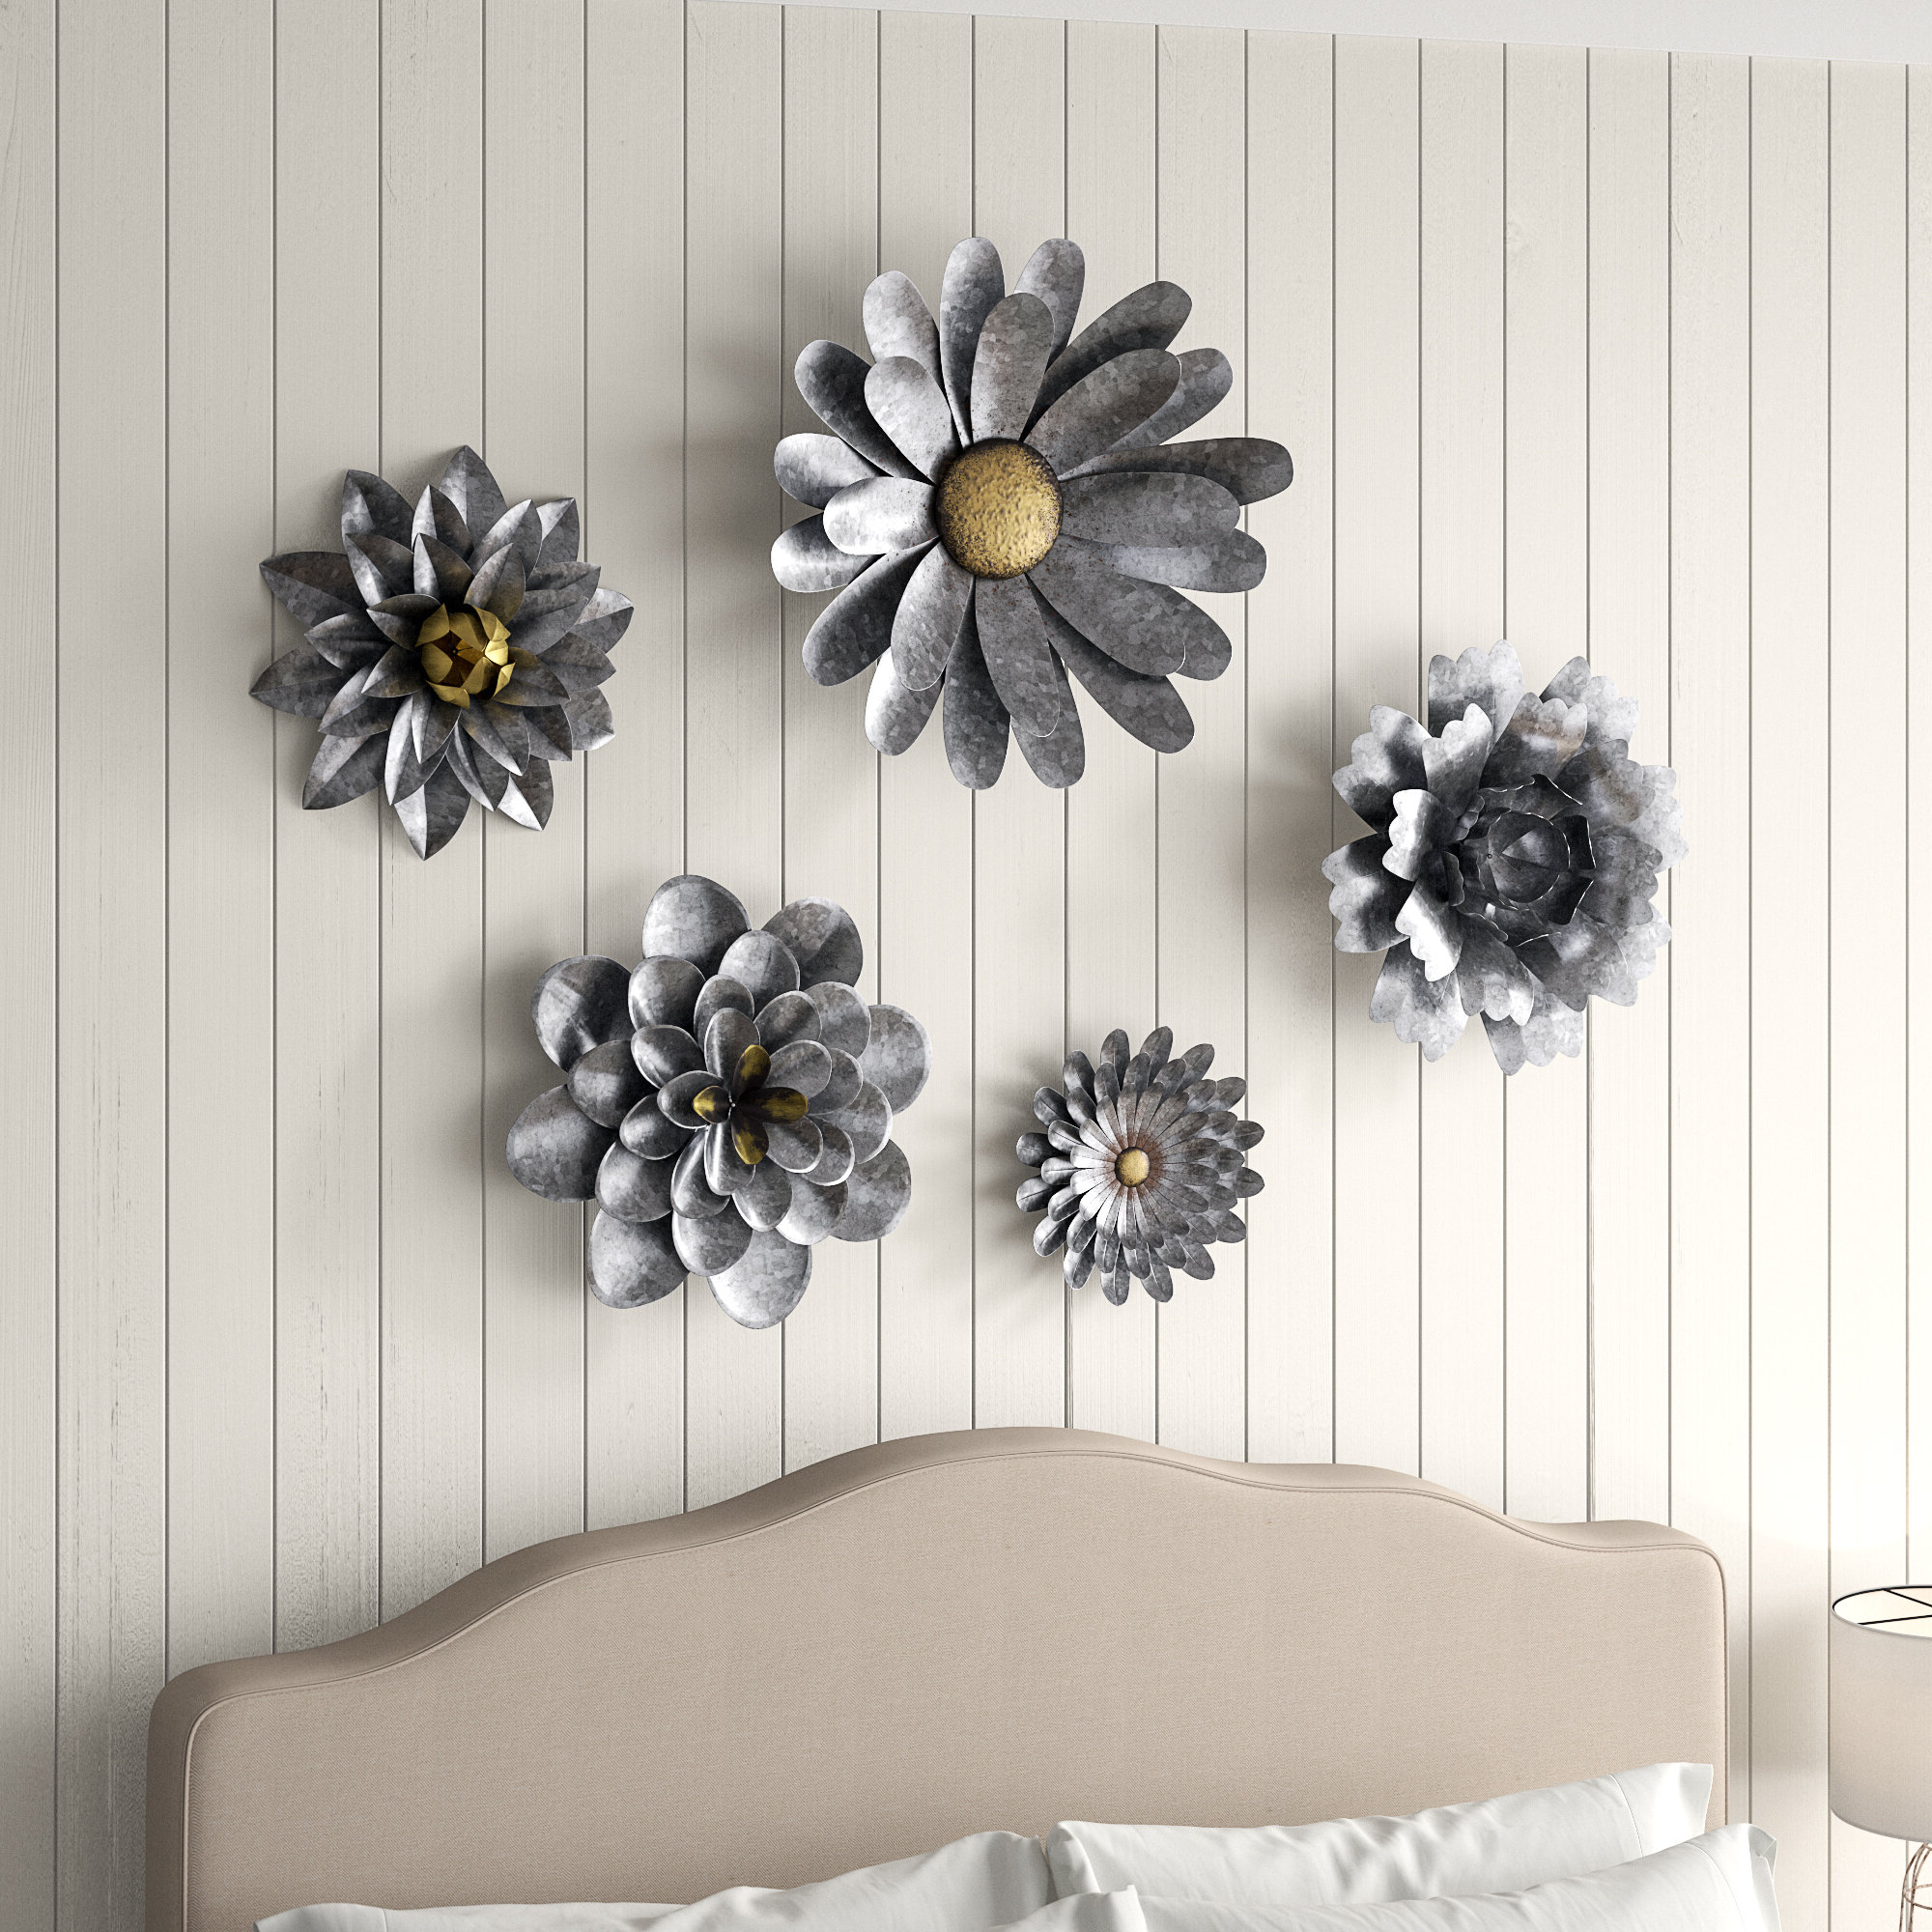 2019 Flower Wall Decor With Regard To Gracie Oaks 5 Piece Galvanized Metal Flower Hanging Wall Décor Set (View 2 of 20)